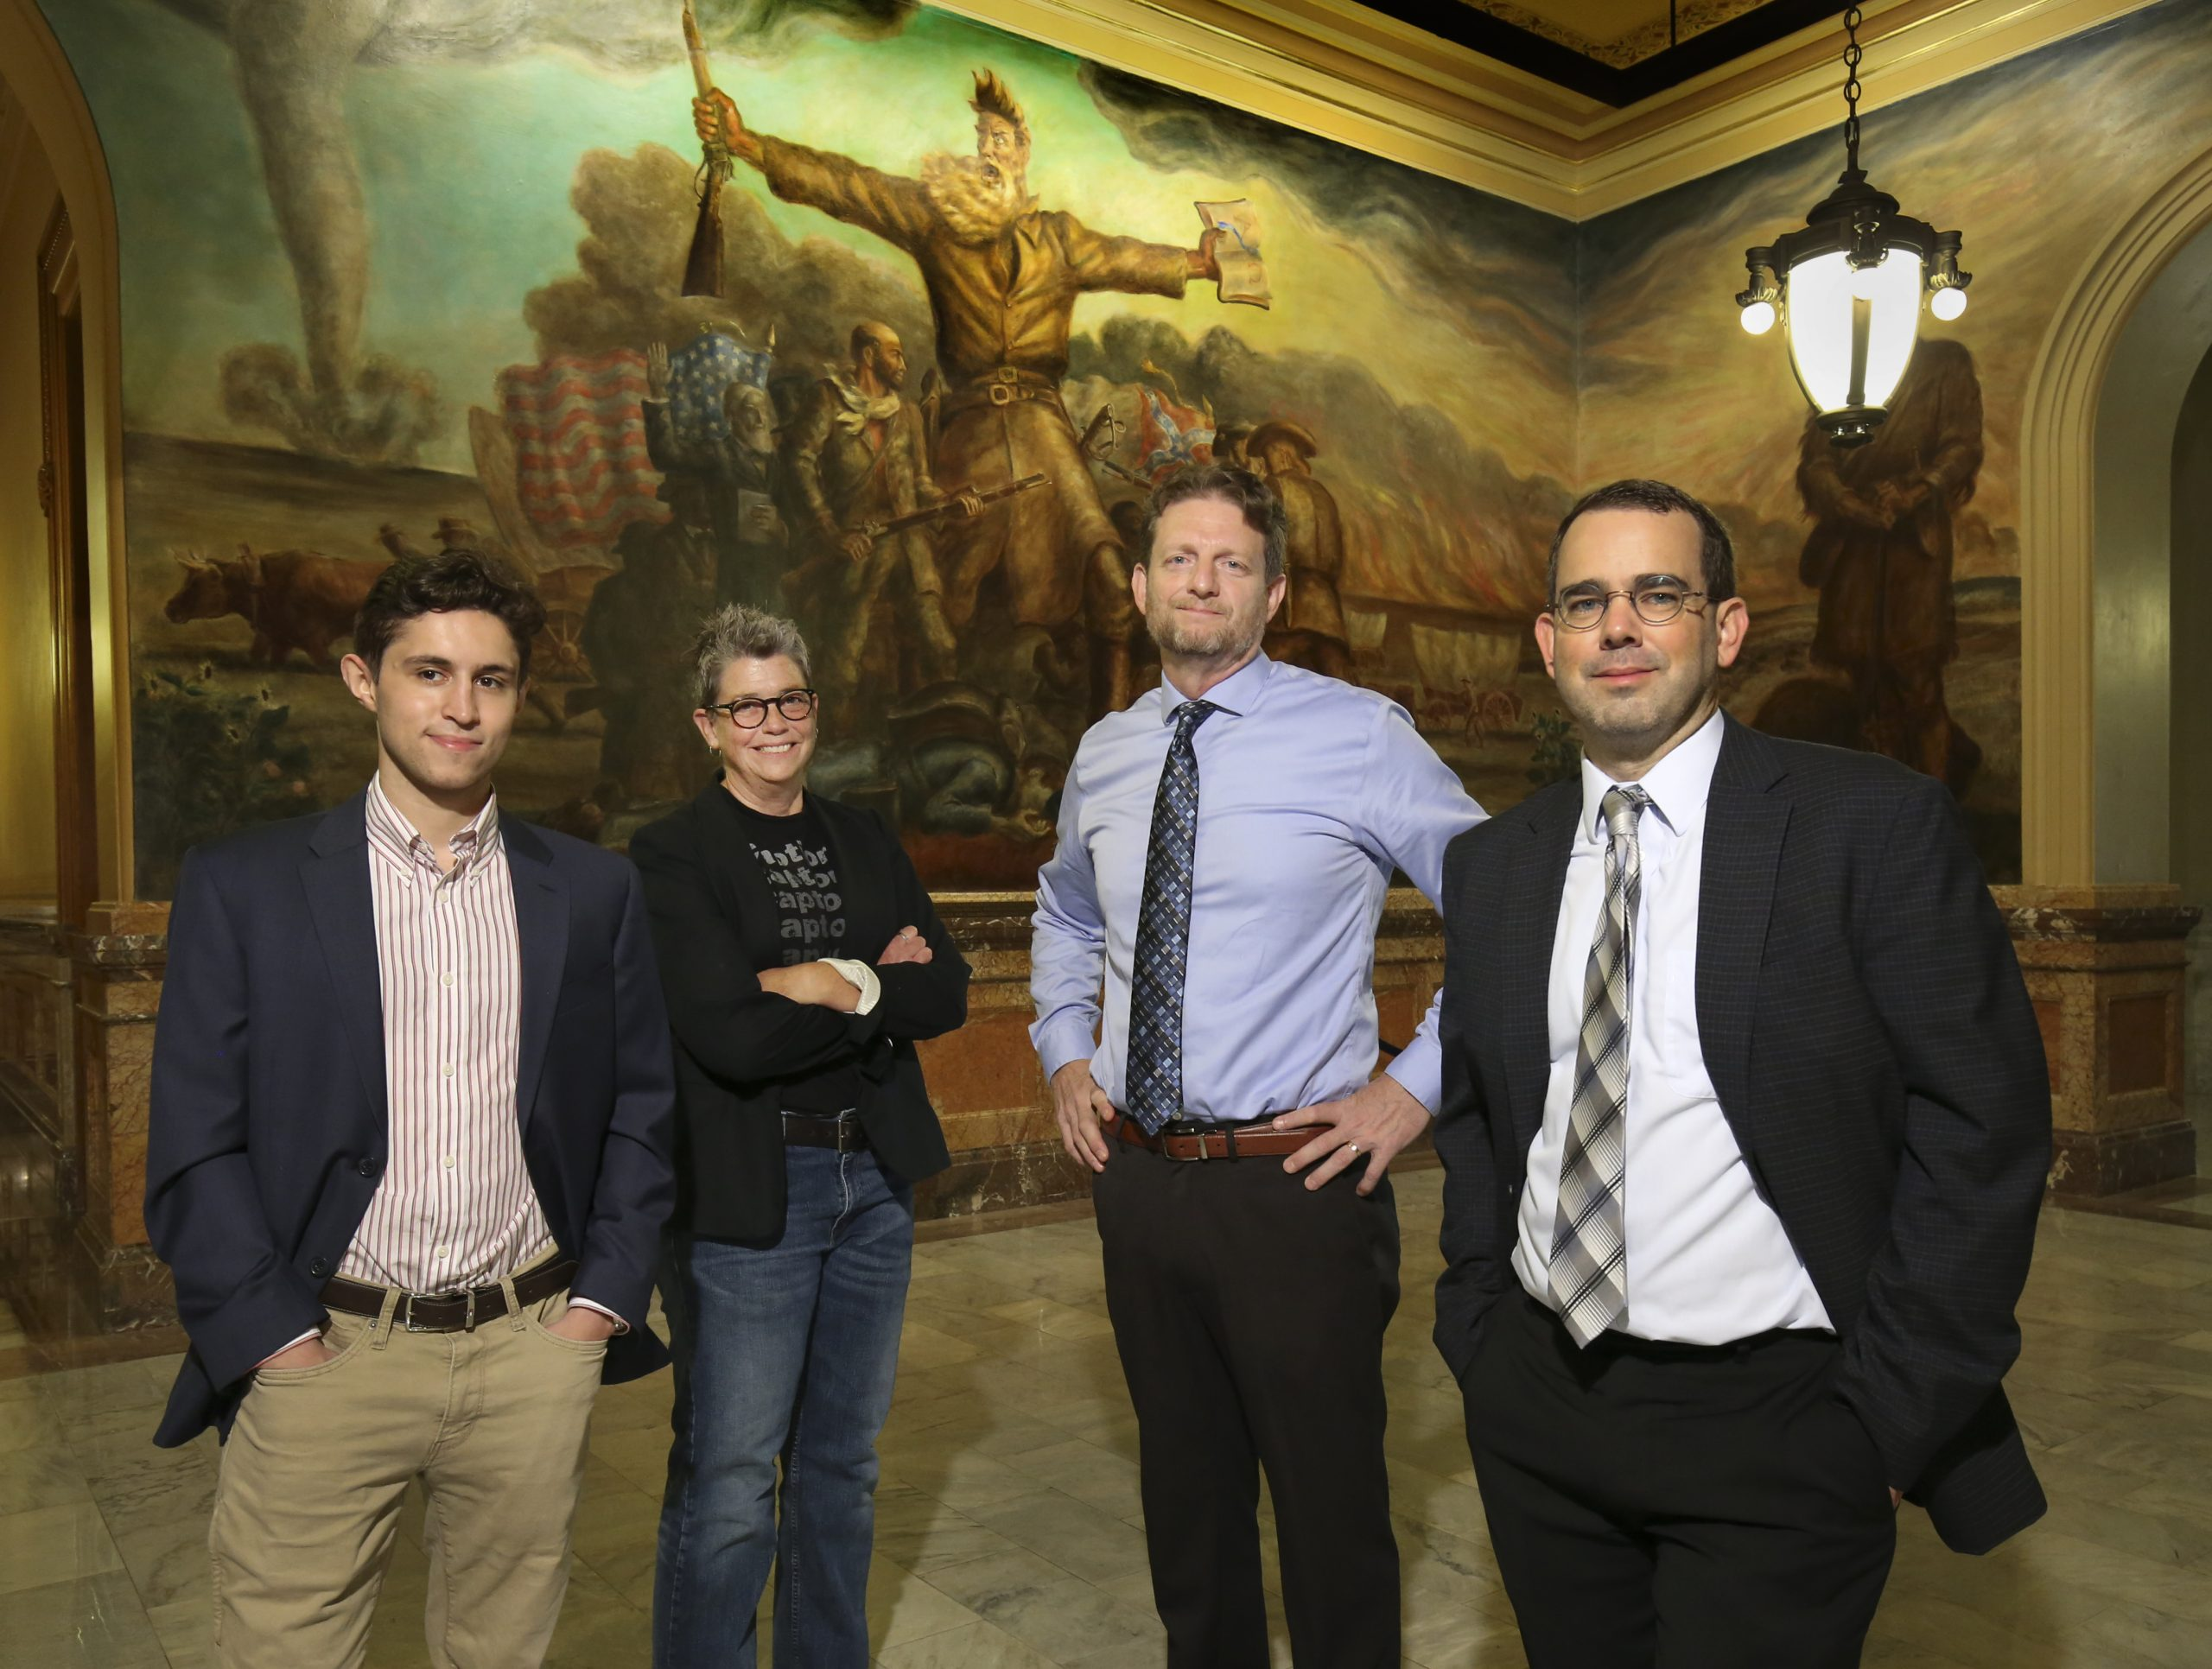 Kansas Reflector editor in chief Sherman Smith, right, is the Kansas Press Association's 2021 journalist of the year for work published in 2020. In the image he's joined by Kansas Reflector colleagues, from left, reporter Noah Taborda, opinion editor C.J. Janovy and senior reporter Tim Carpenter at the Capitol. (Thad Allton for Kansas Reflector)